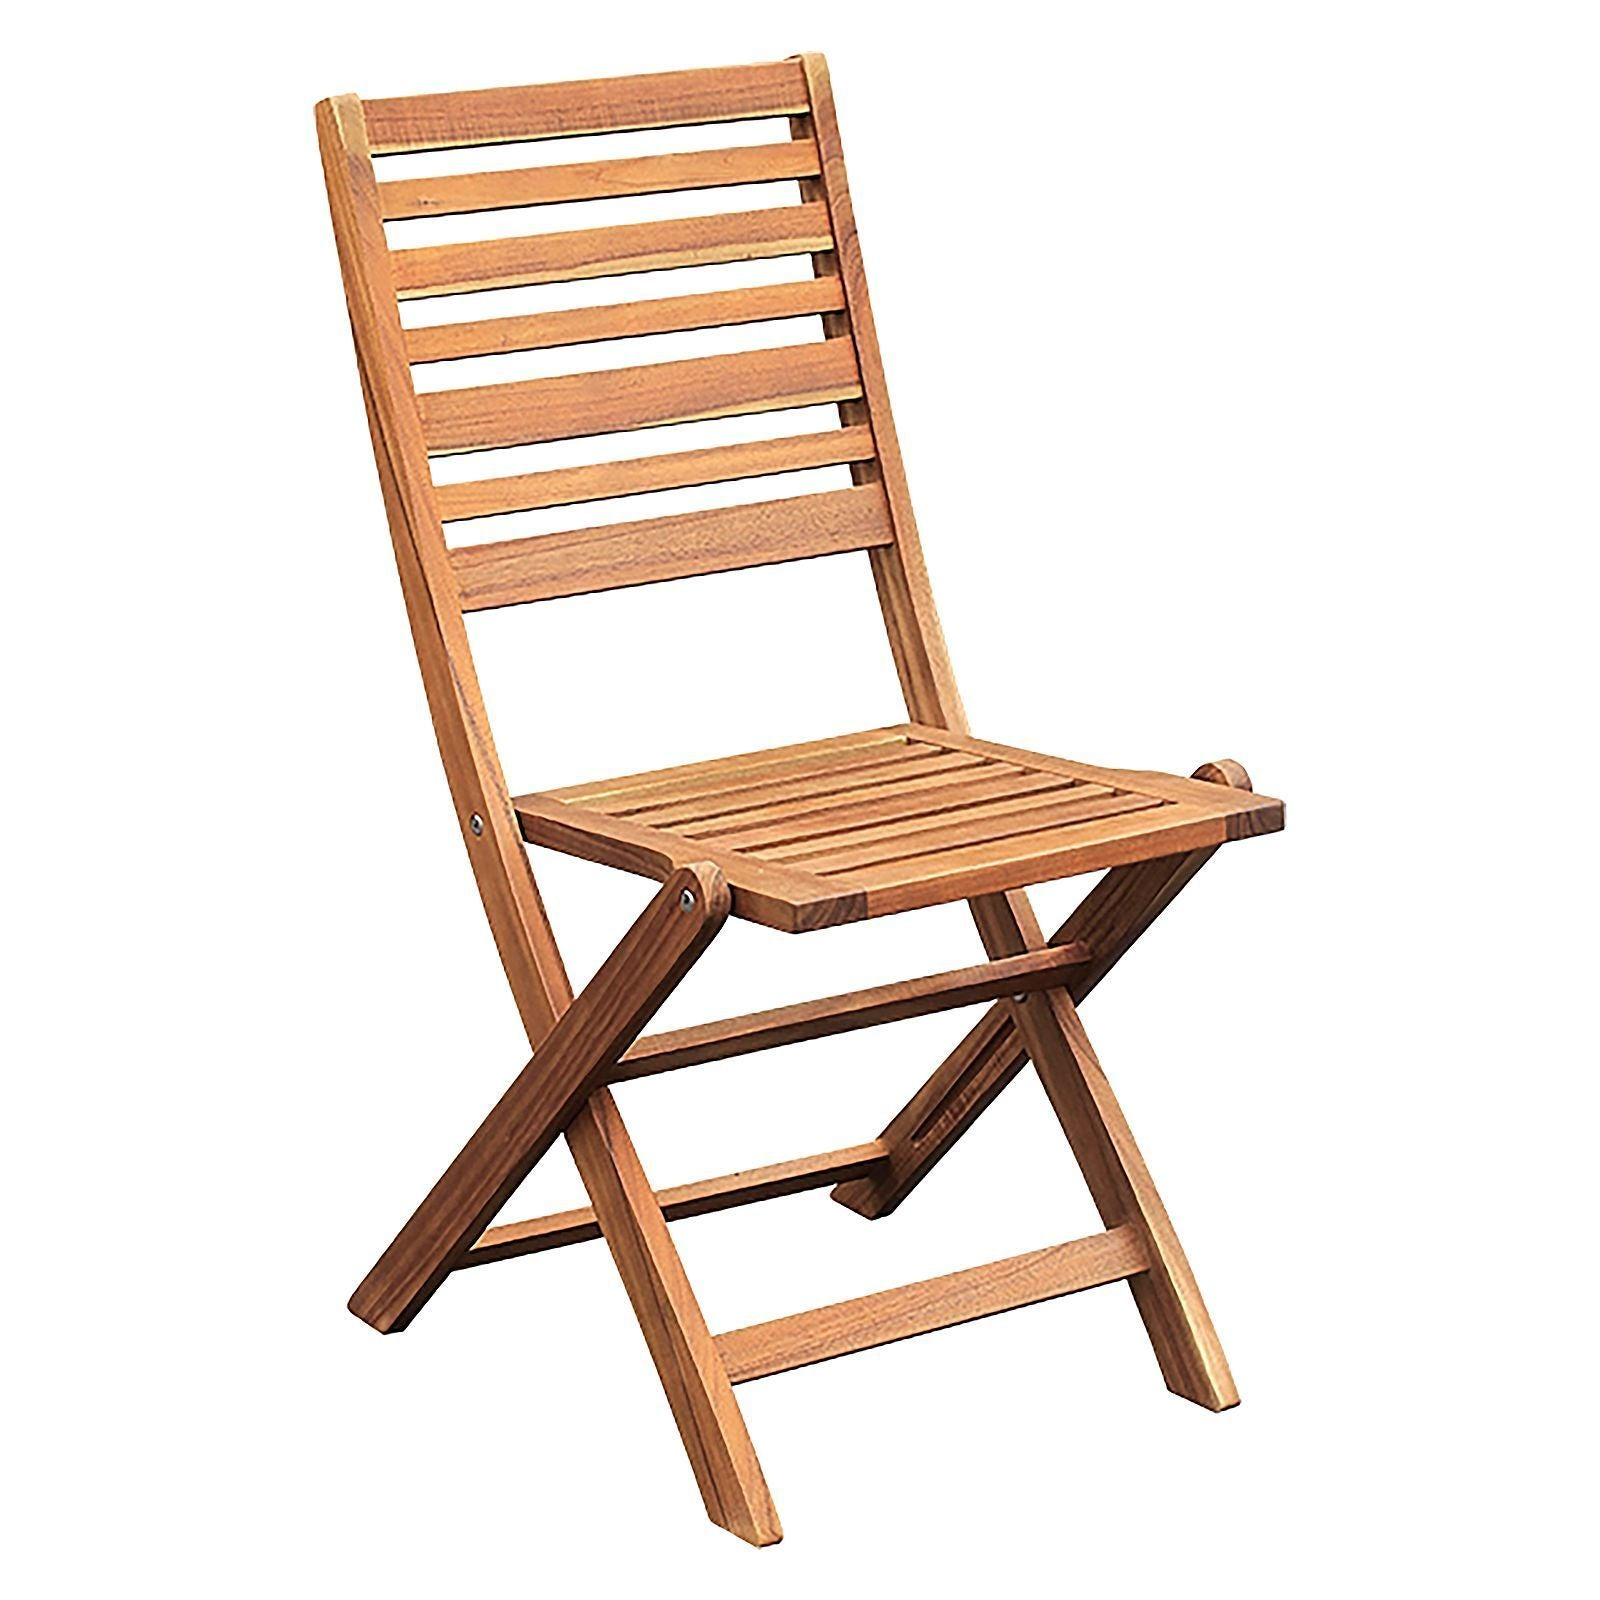 Nido Outdoor Folding Dining Chair - Outdoor Living Essentials